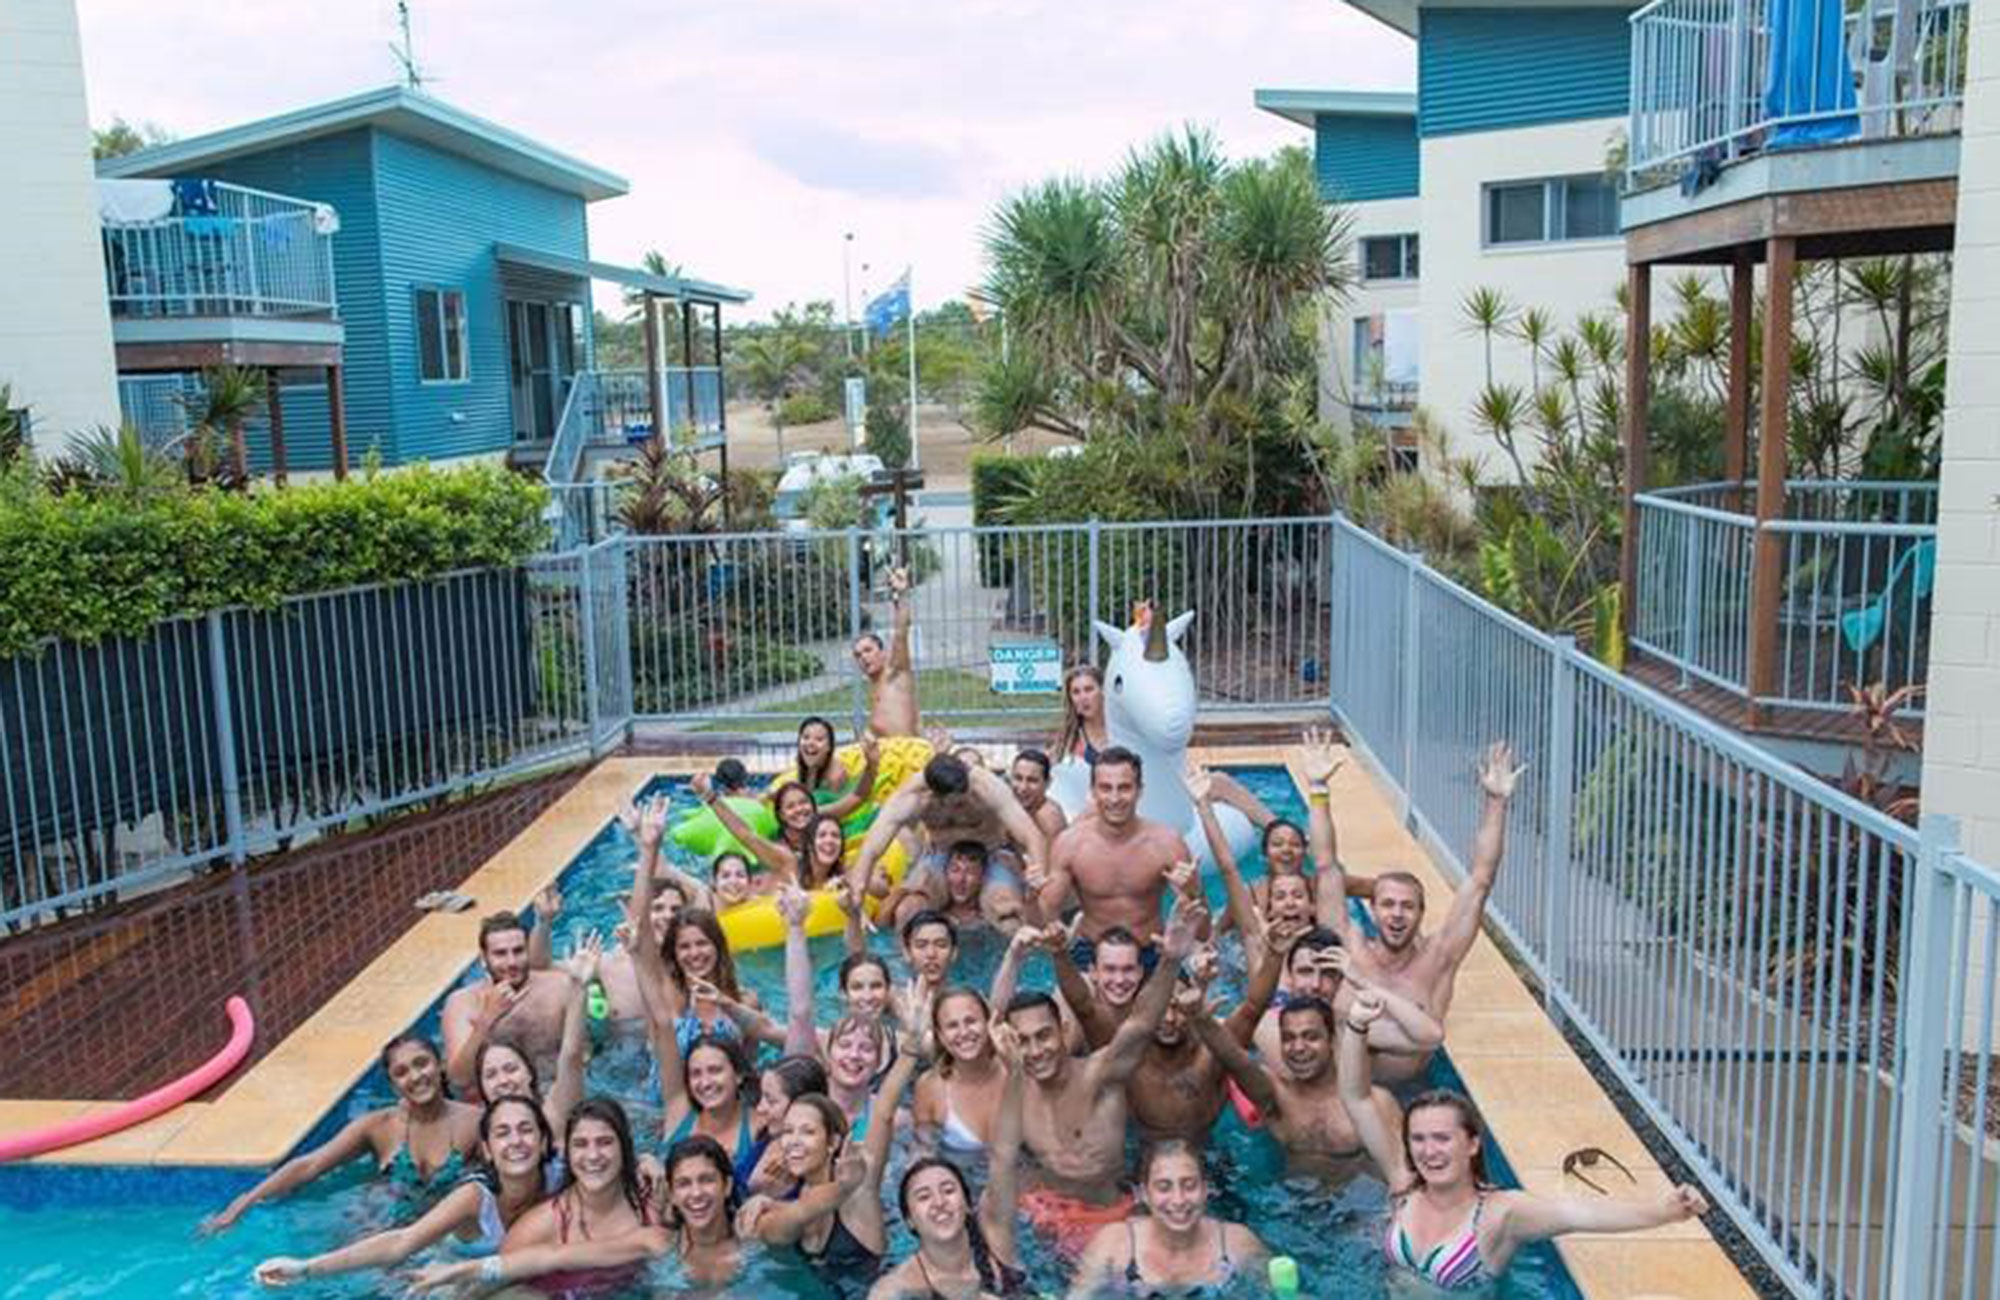 ida and her friends have a pool party in Australia